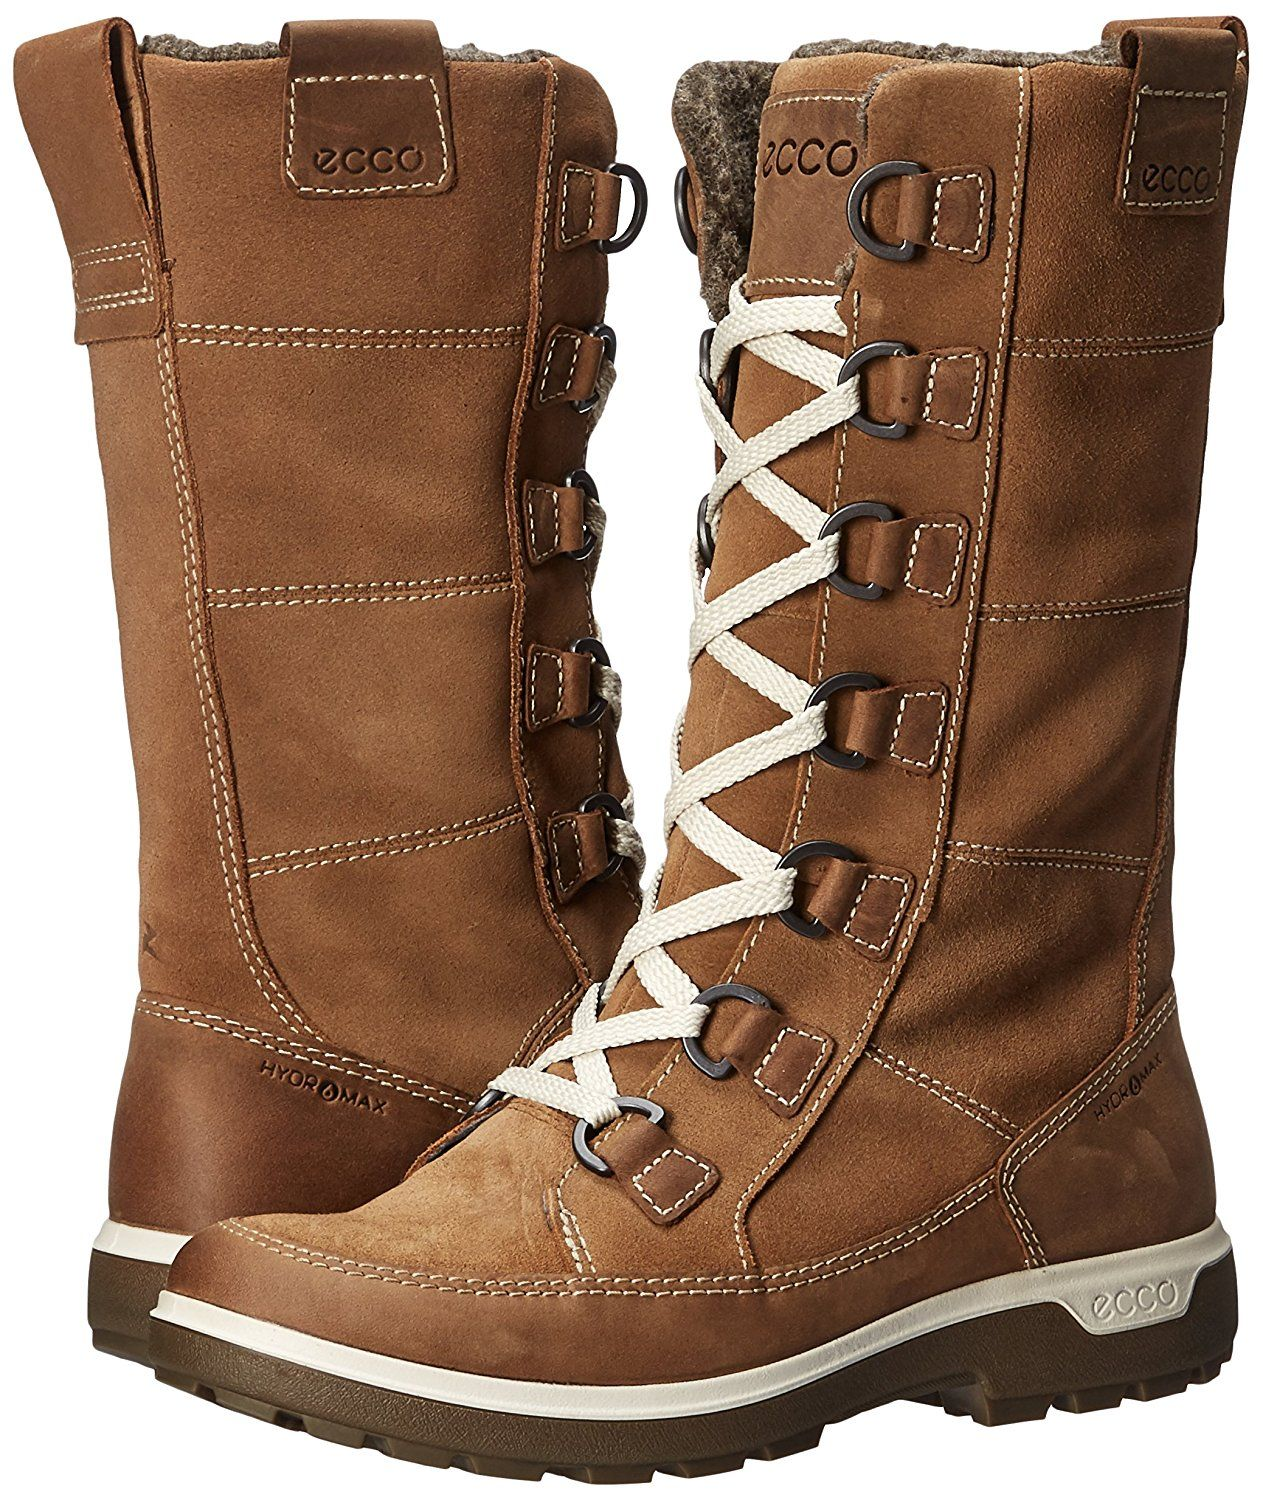 ECCO Womens Gora GTX Hiking Boot